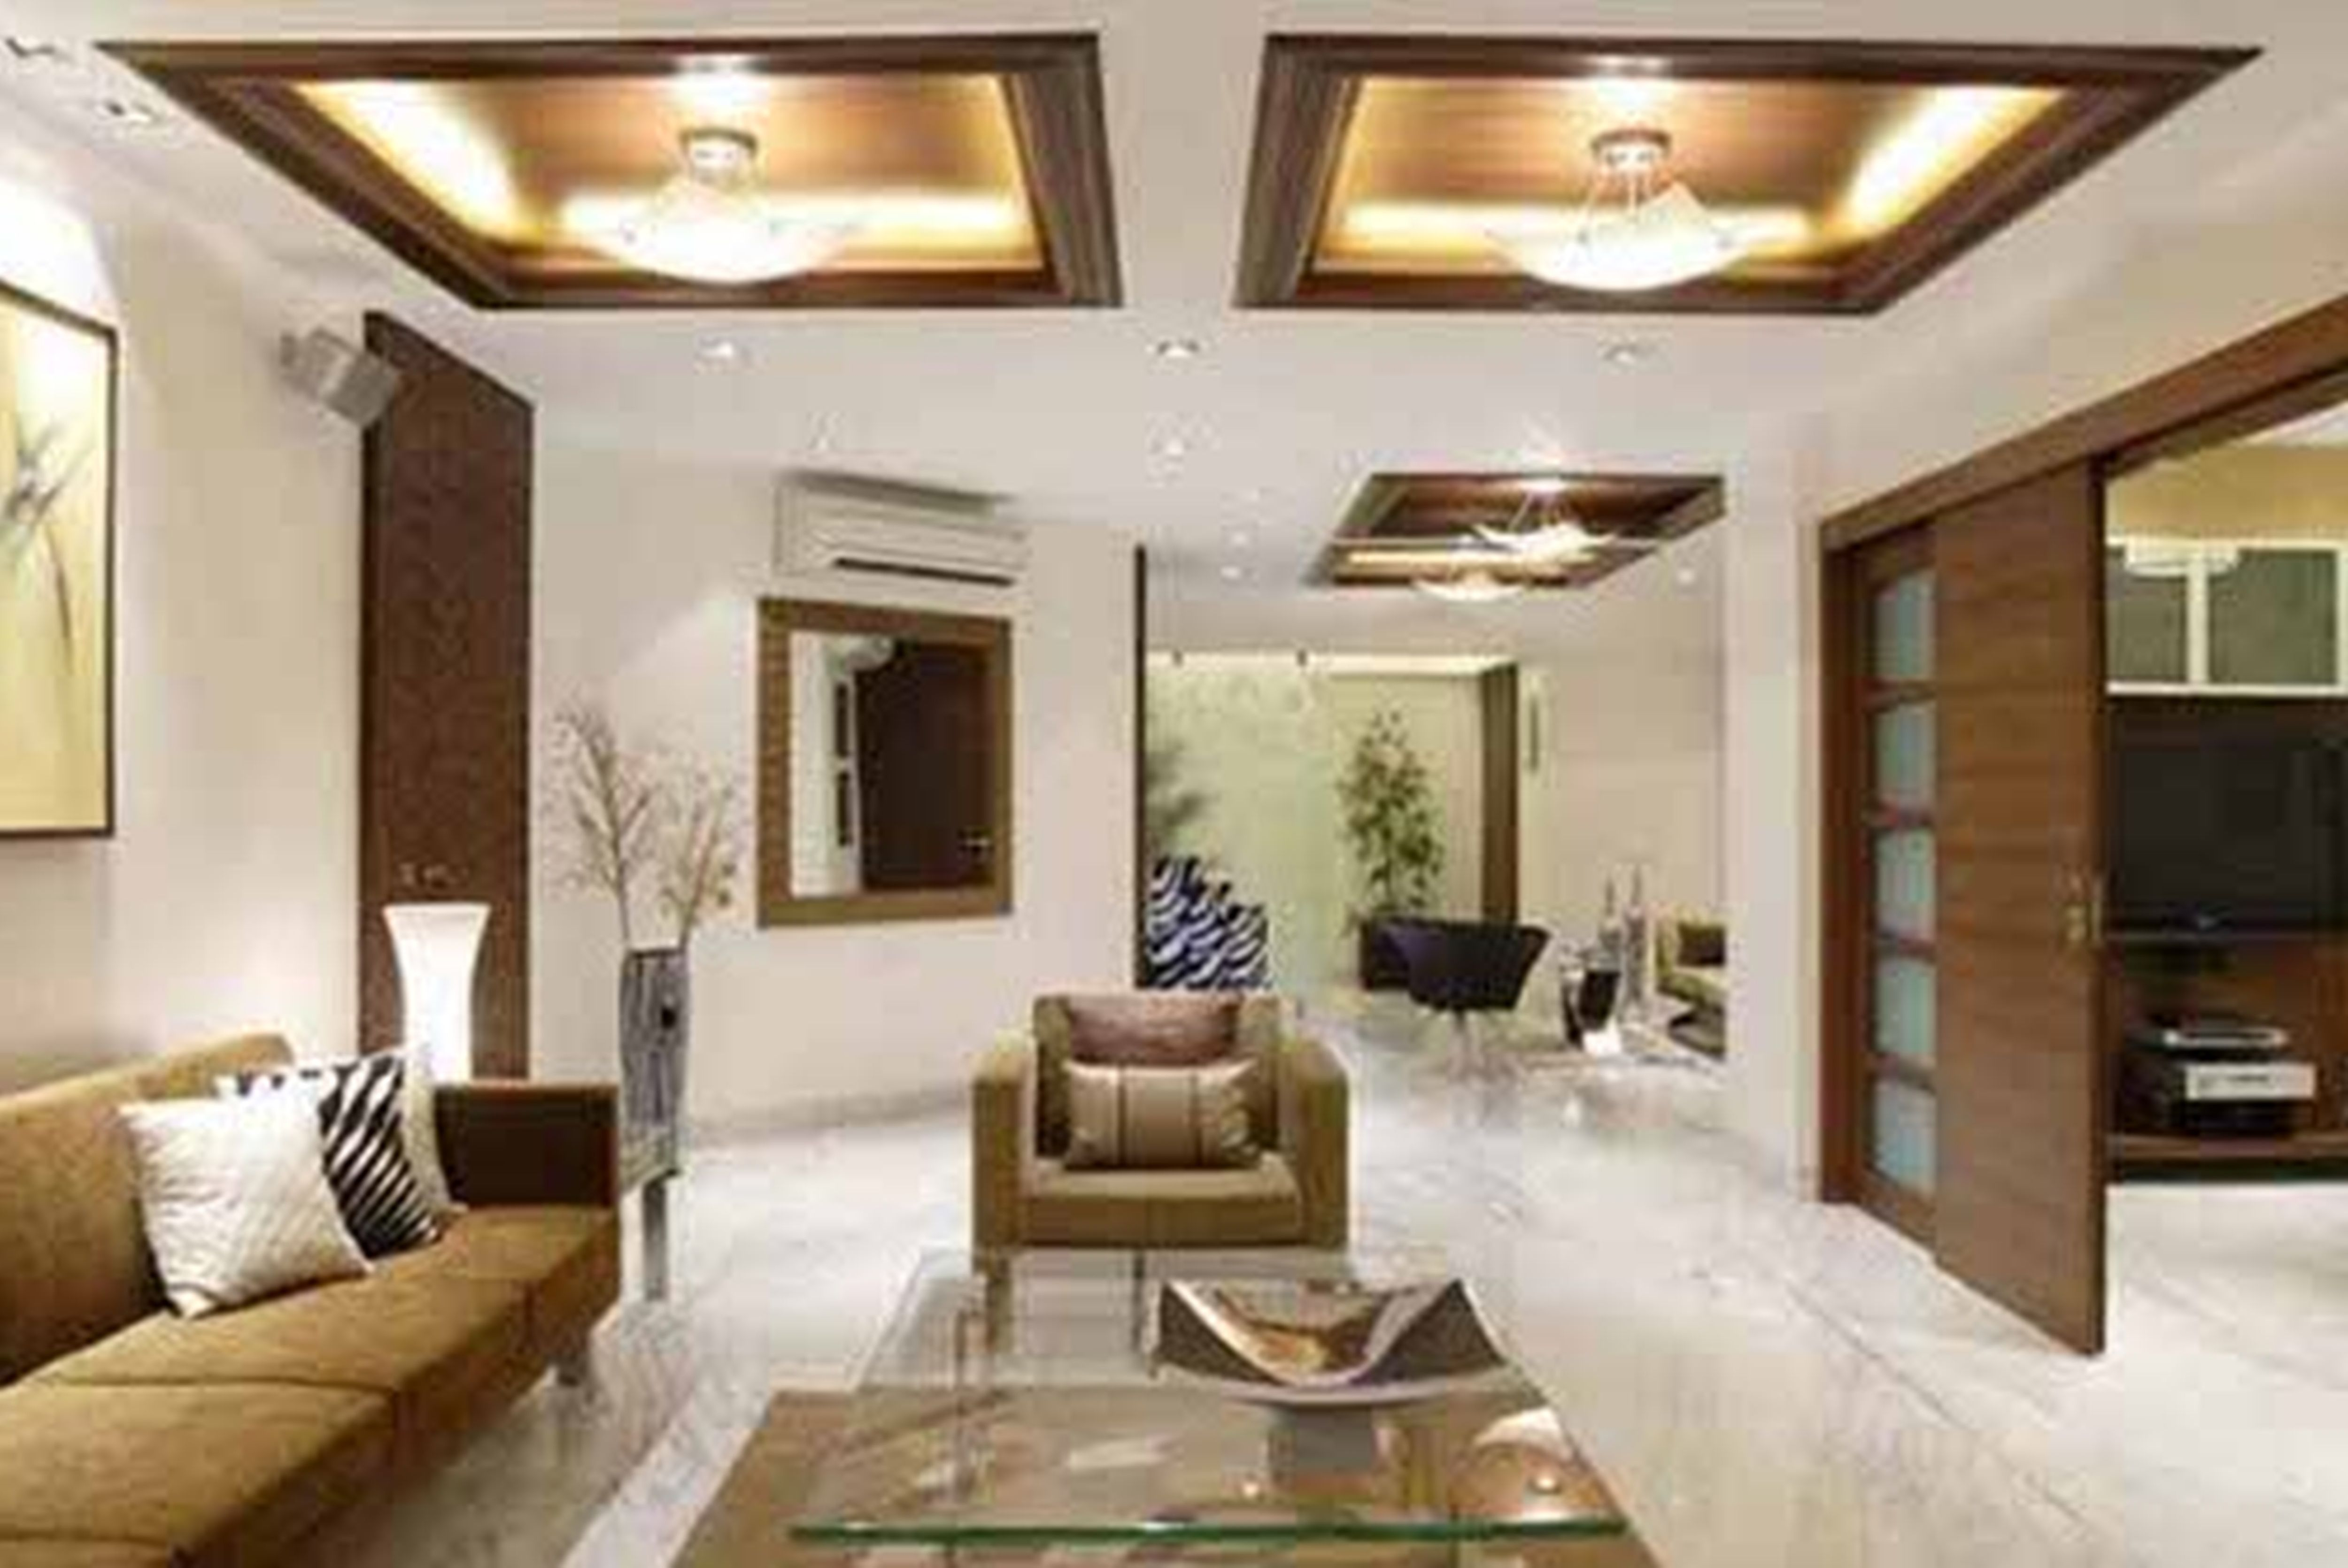 Affordable interior design ideas joy studio design Simple and cheap interior design ideas